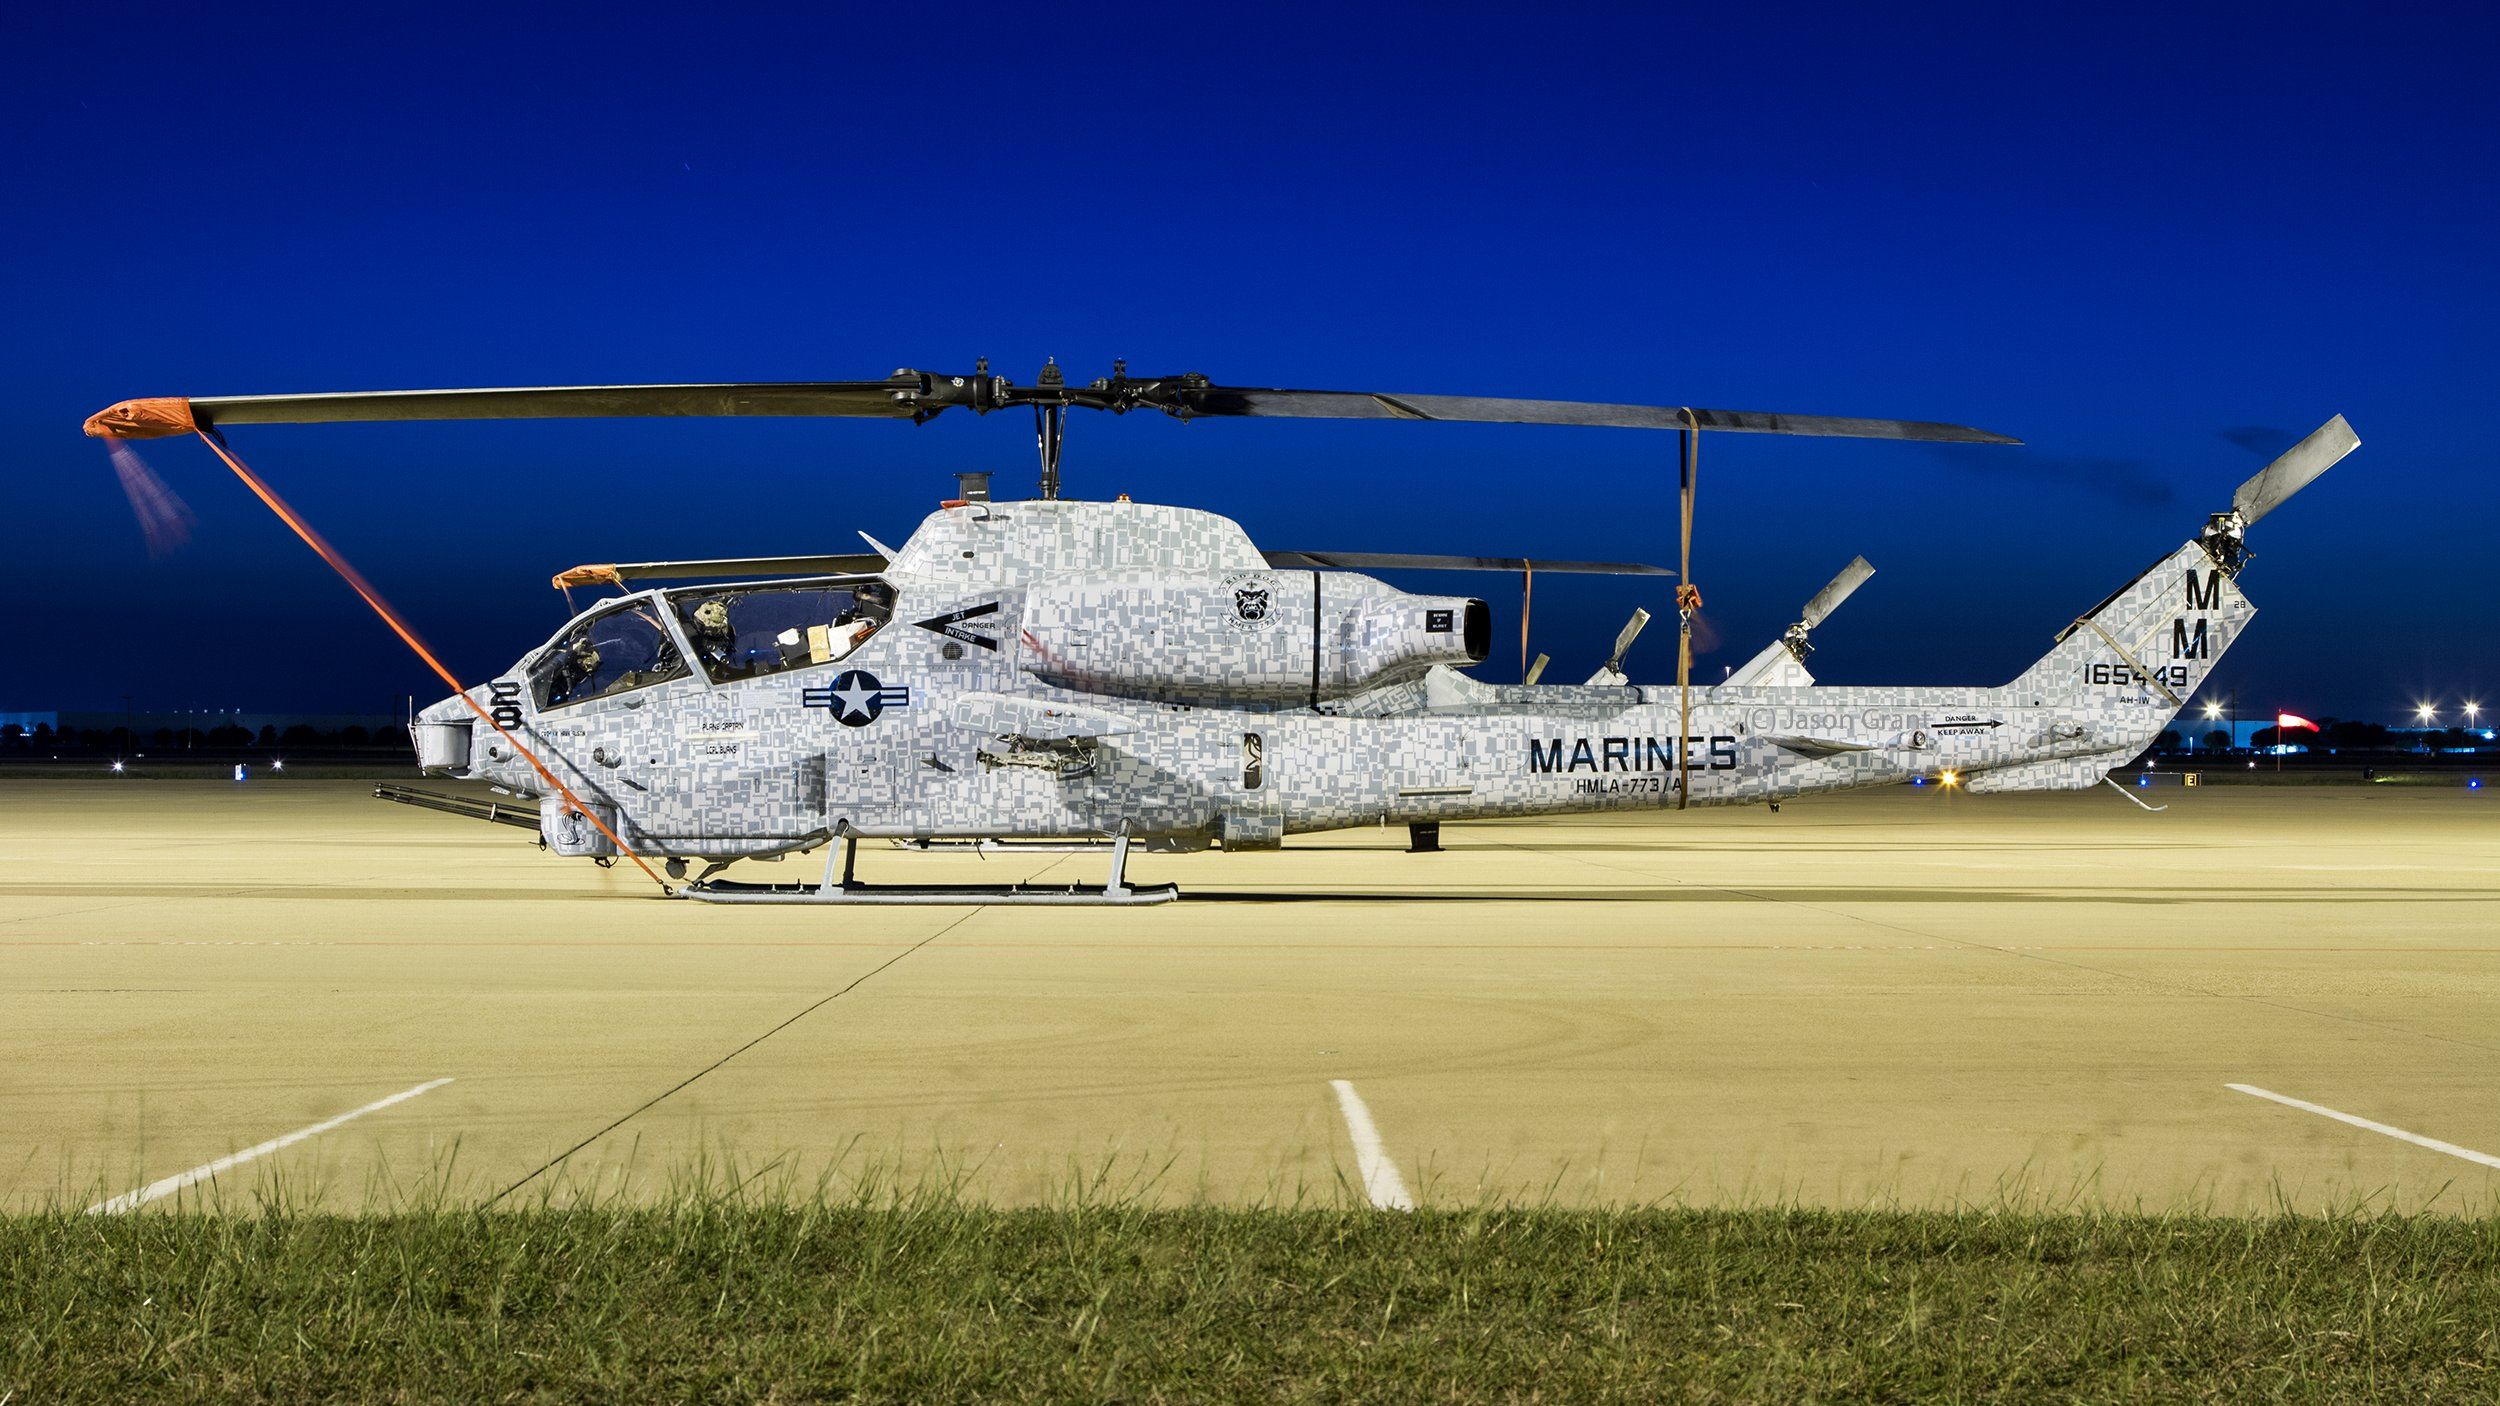 AH1W SUPER COBRA attack helicopter Vehicles Pinterest